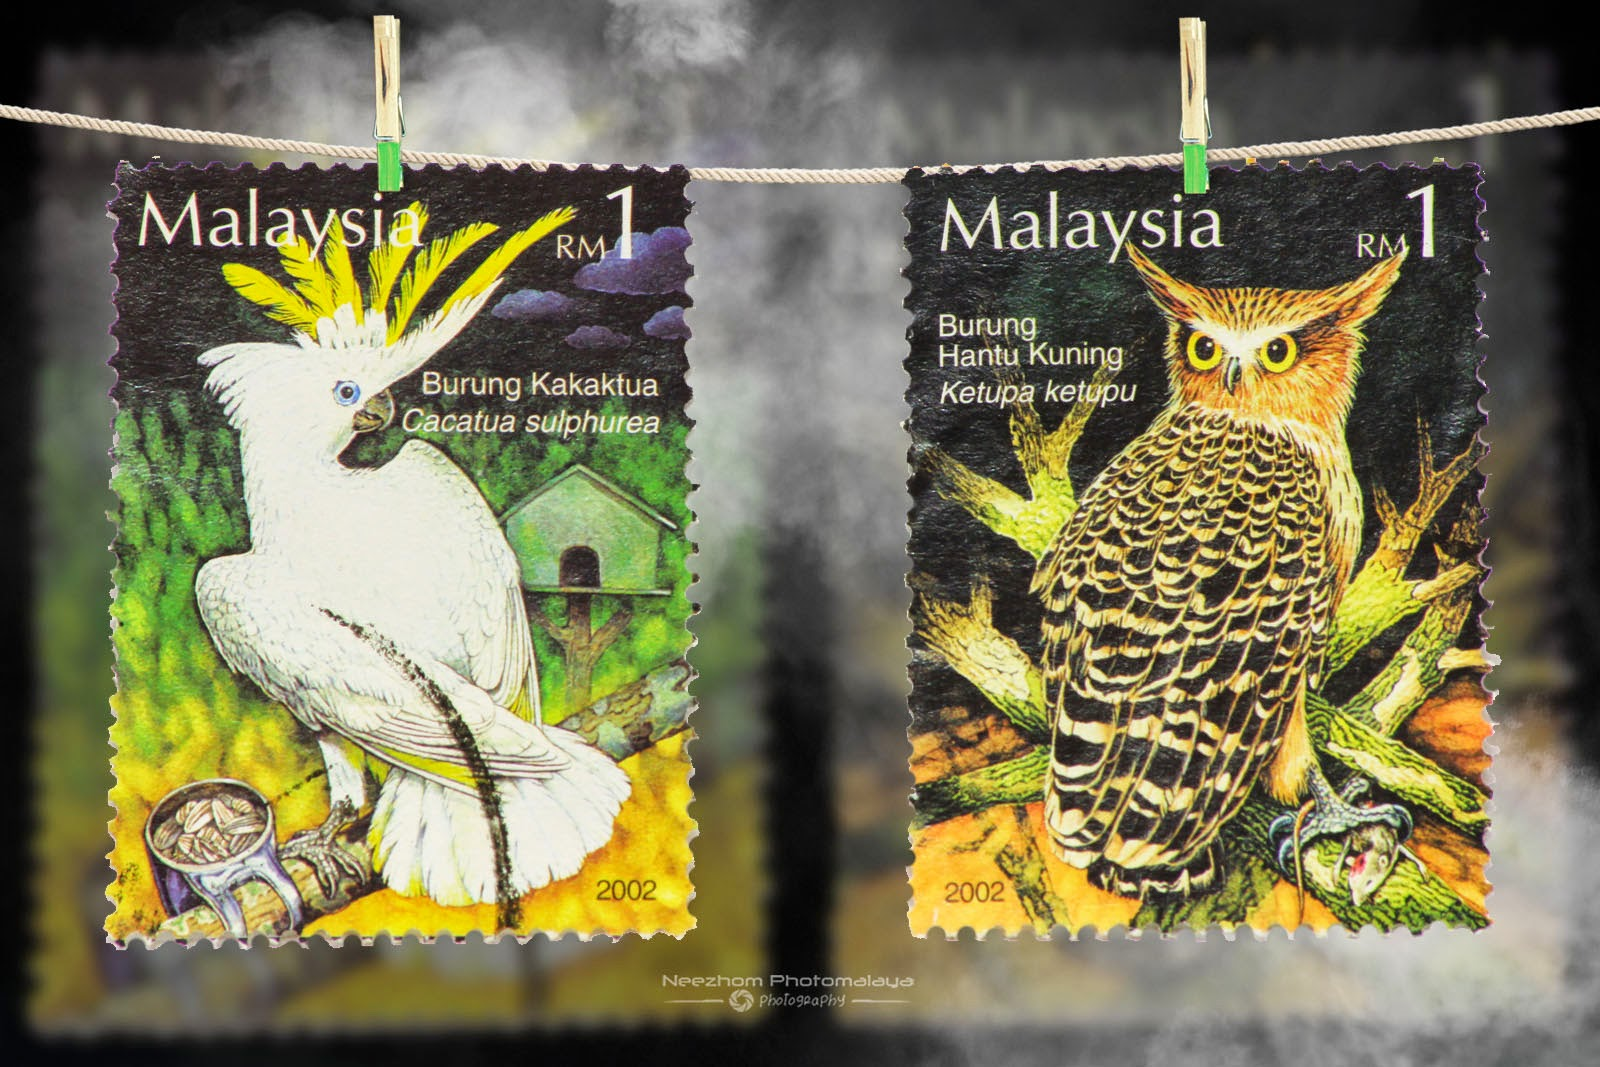 Malaysia 2002 The Tame and The Wild stamps